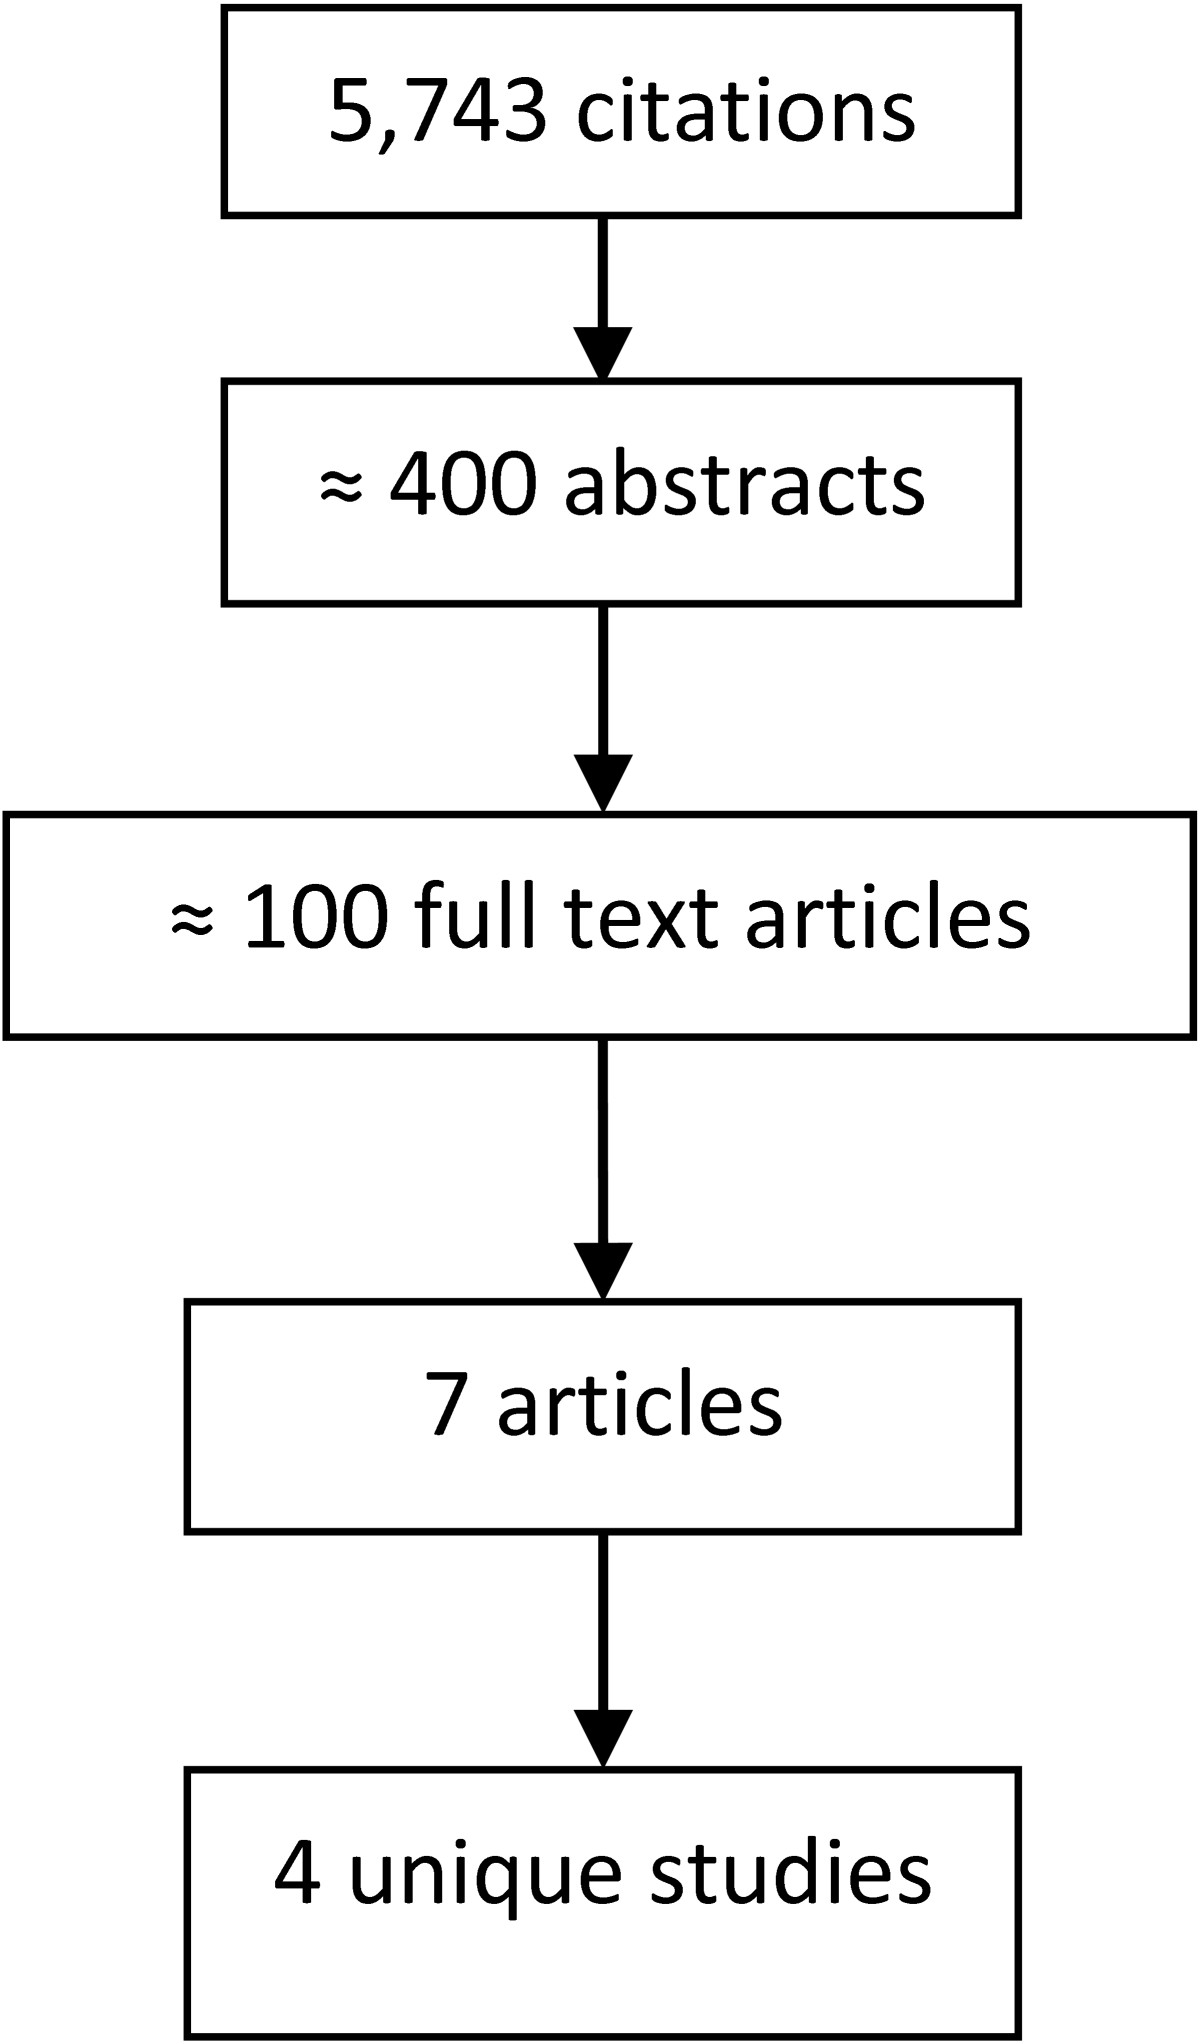 https://static-content.springer.com/image/art%3A10.1186%2F1472-684X-12-40/MediaObjects/12904_2013_Article_180_Fig1_HTML.jpg